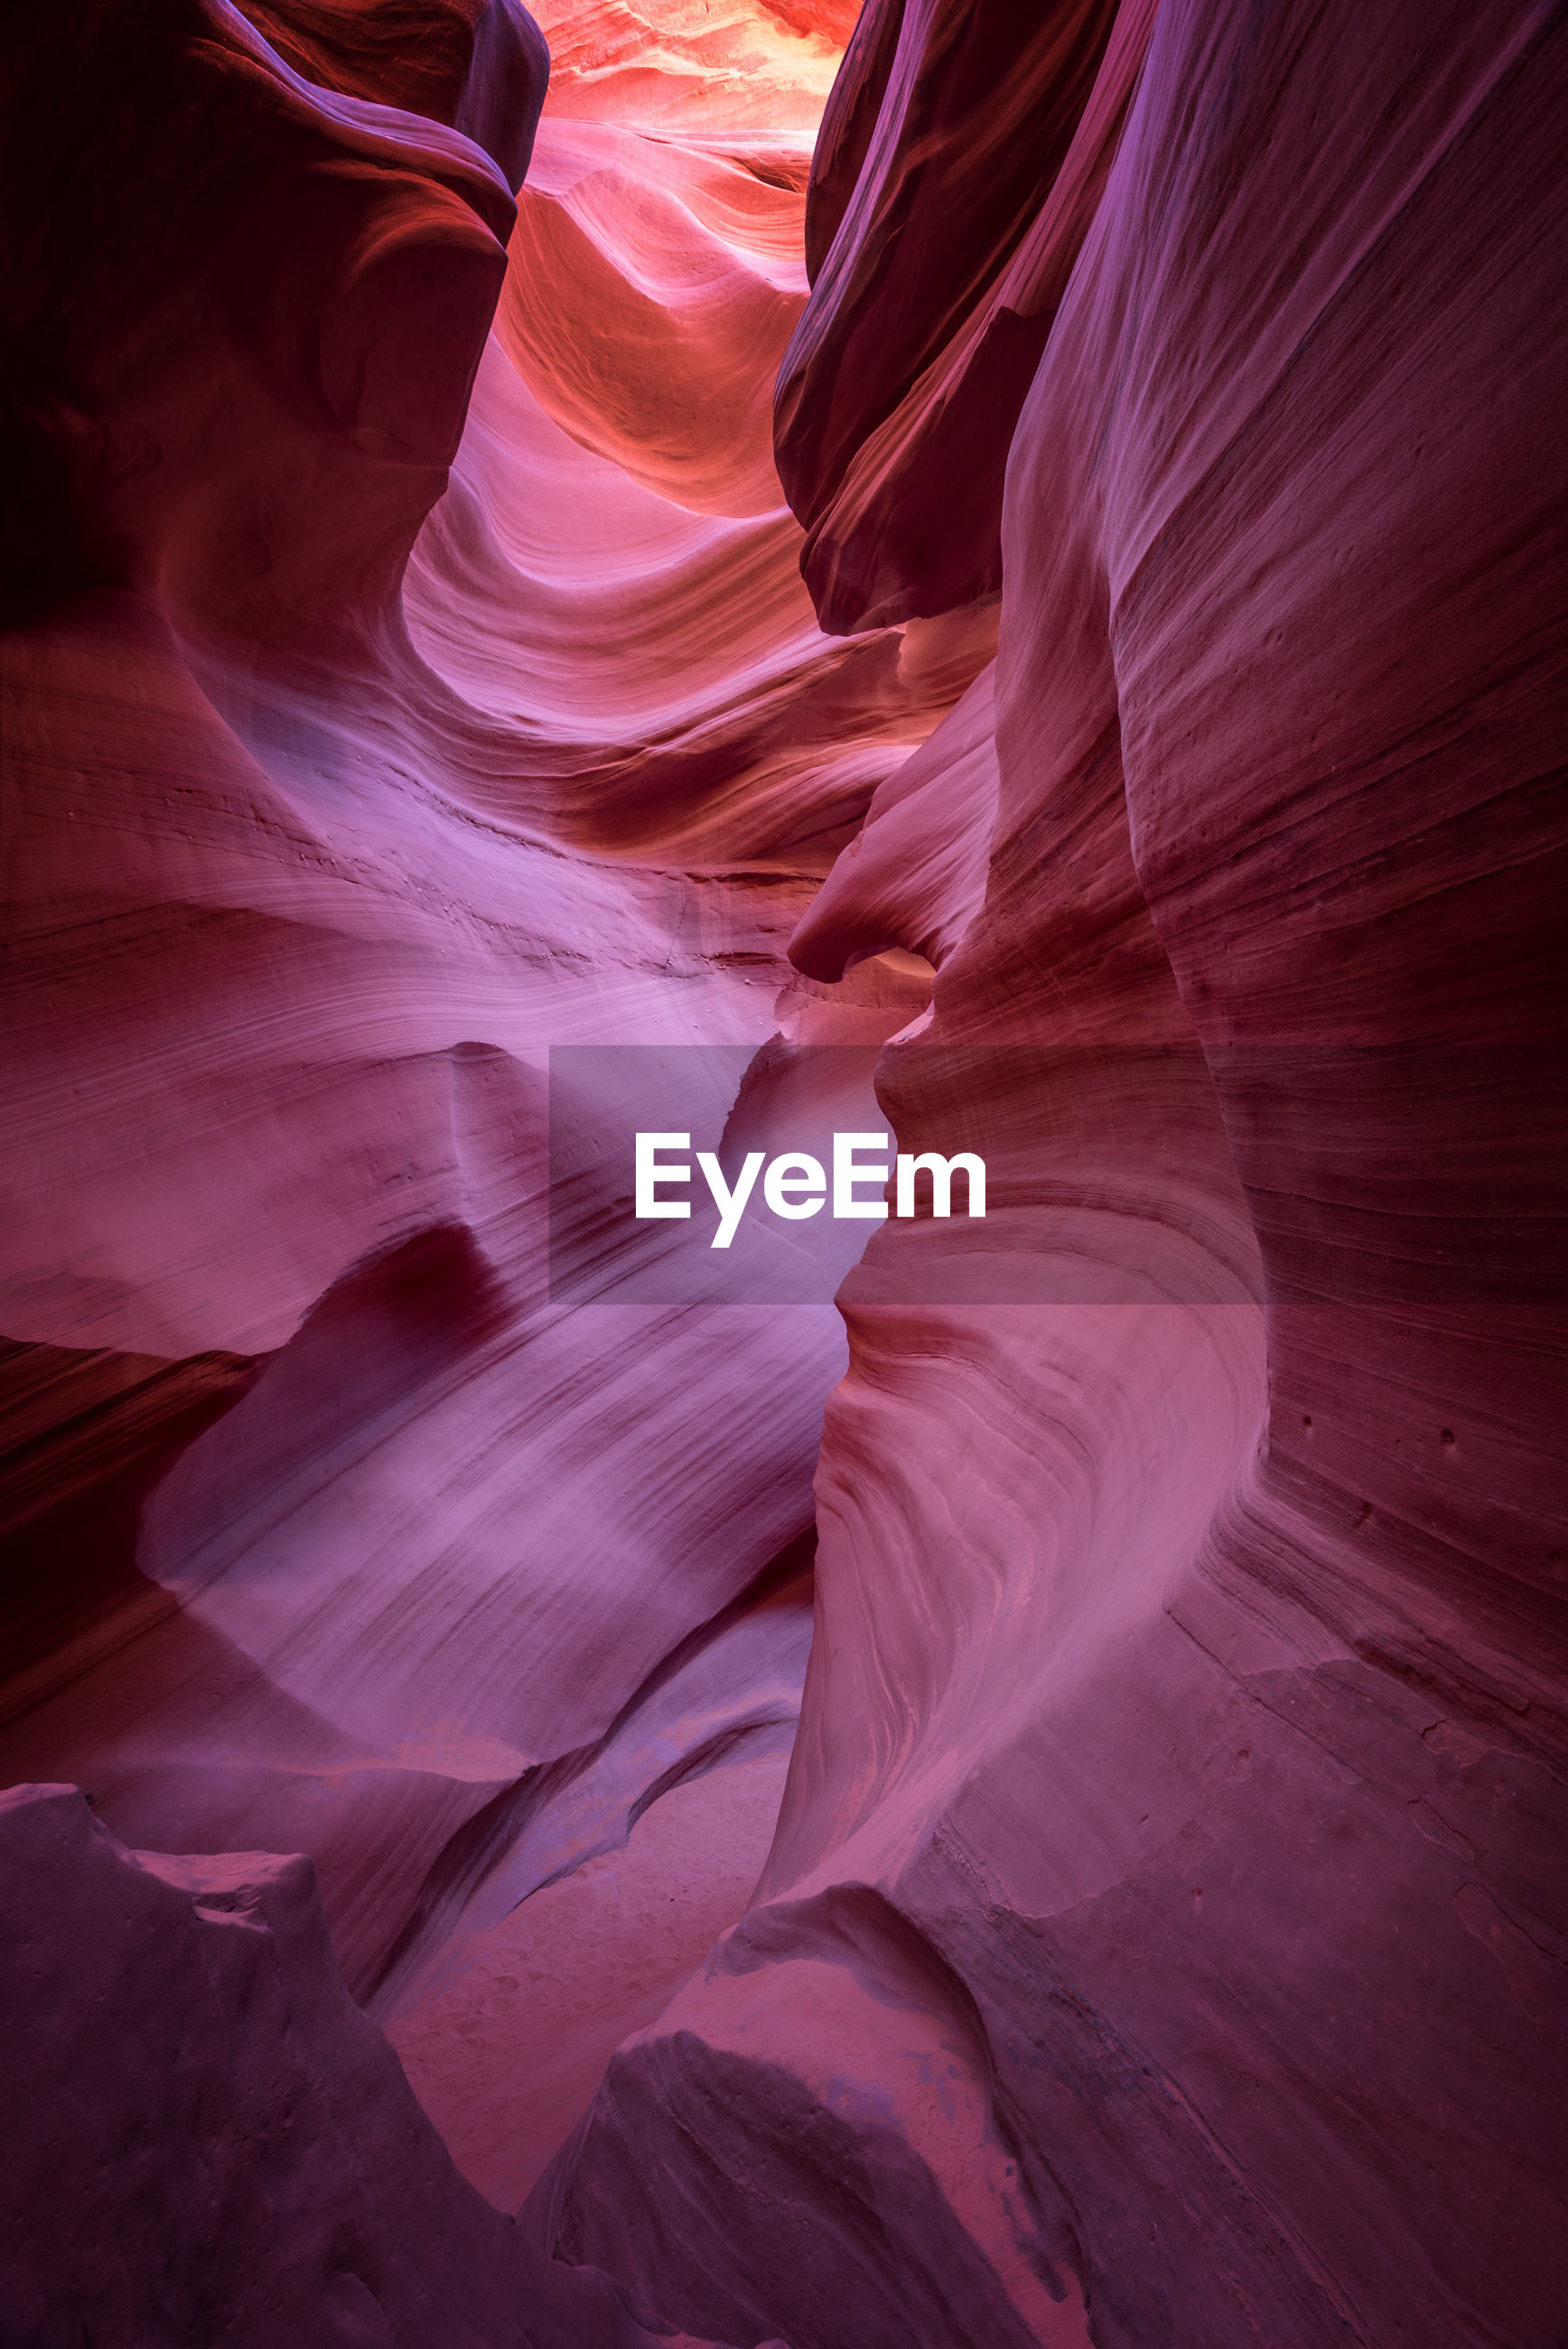 Rock formations at lower antelope canyon